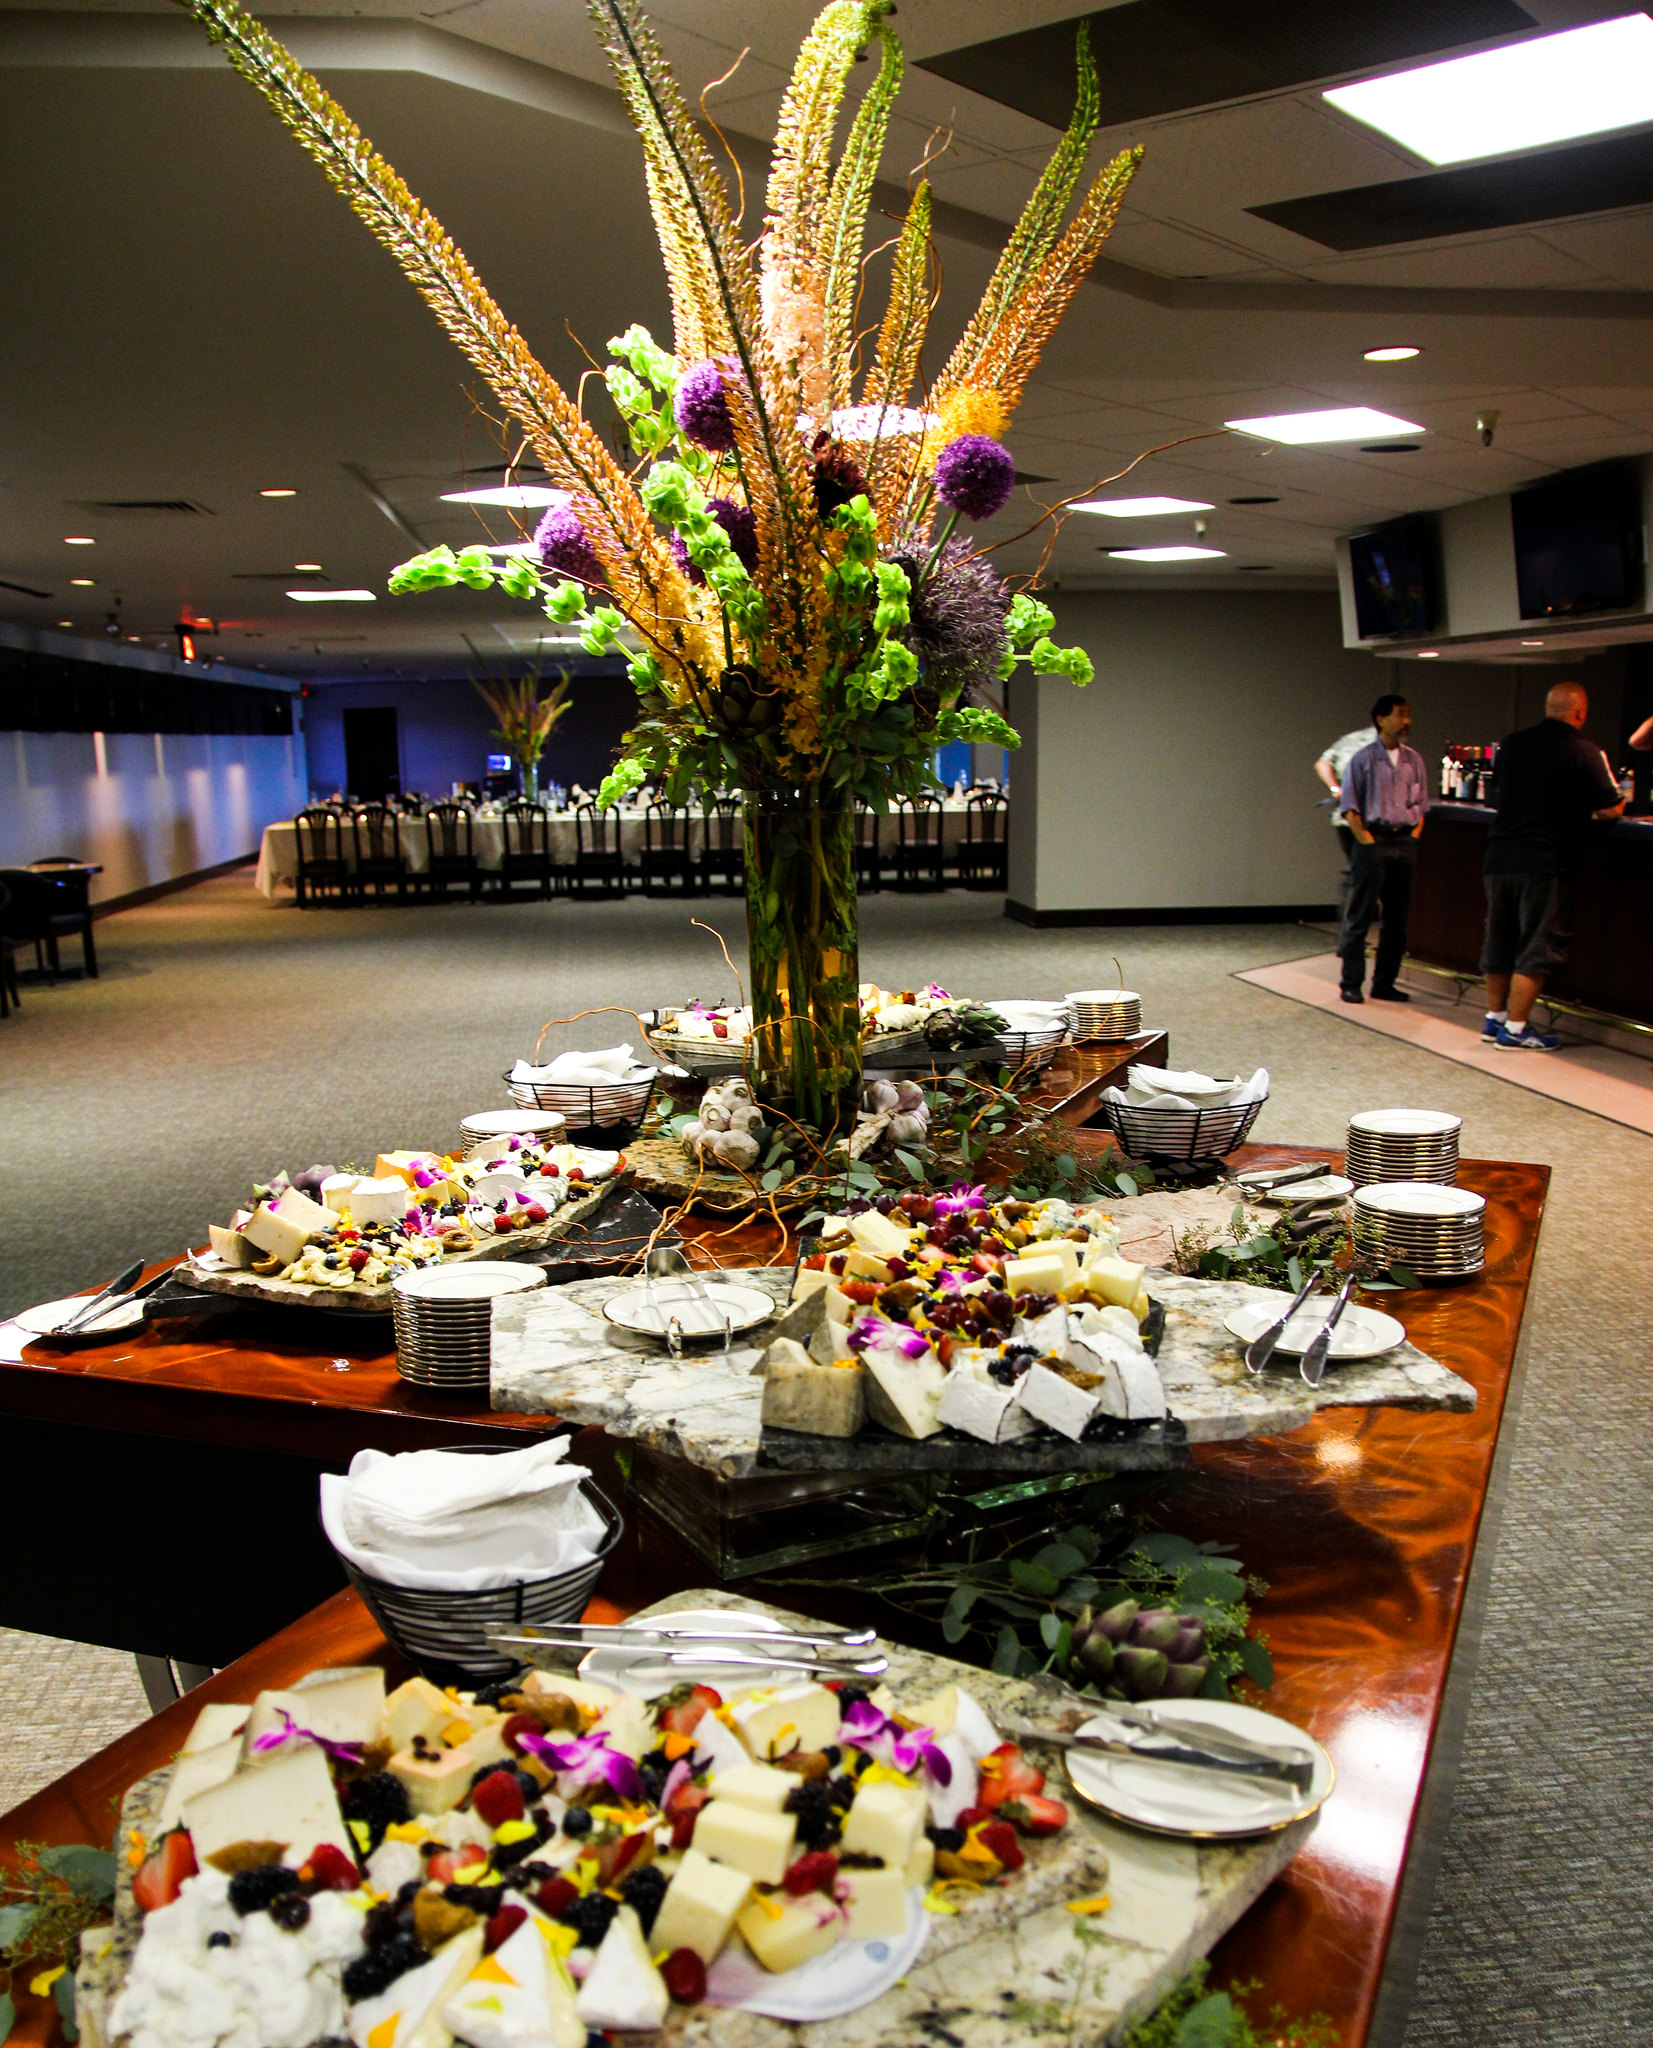 Large table of food and large flower arrangement